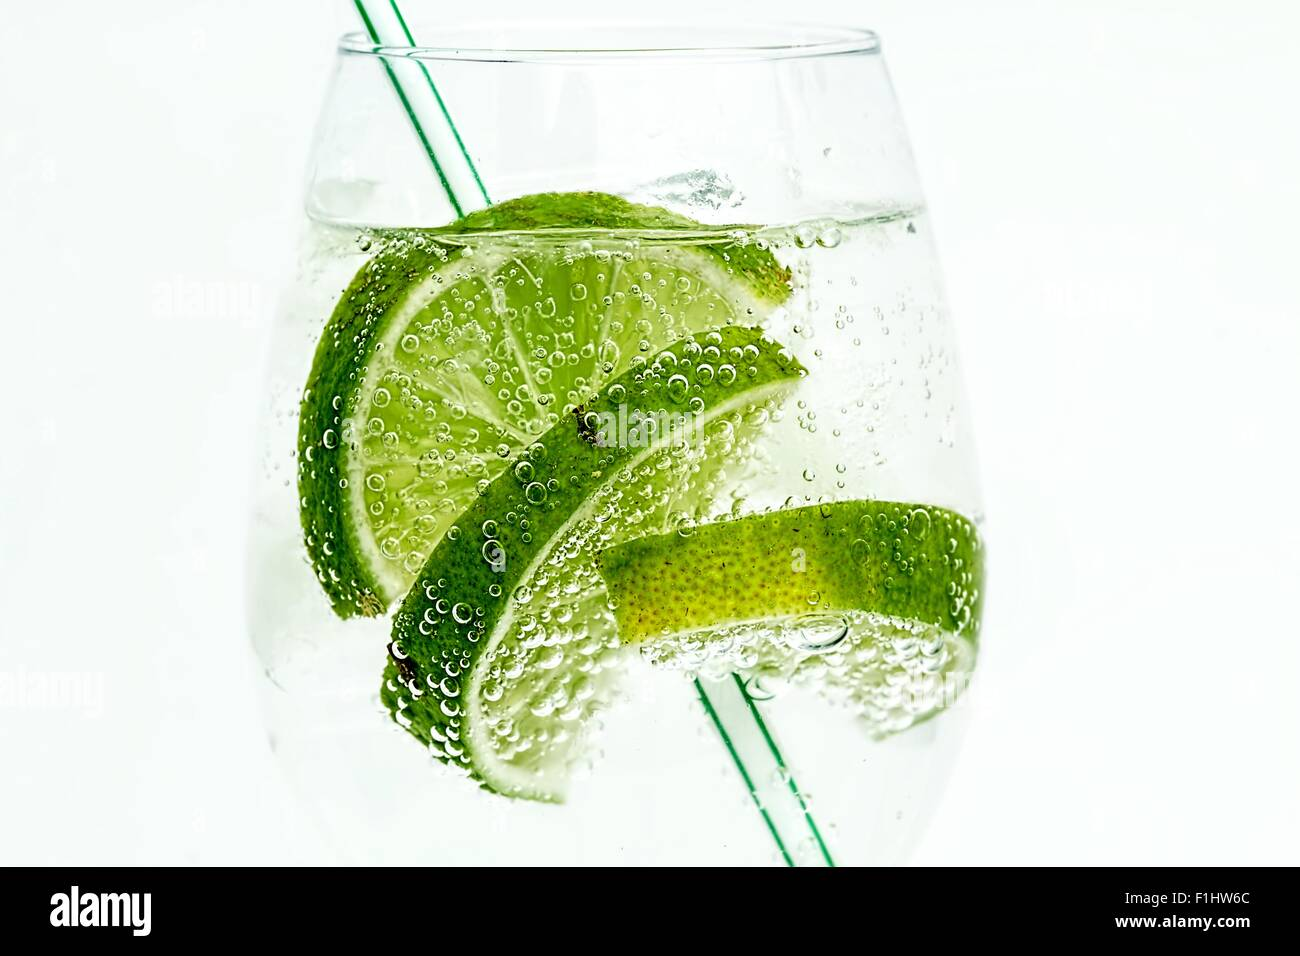 Slices of lime in a glass of fizzy drink with a straw on a white background - Stock Image